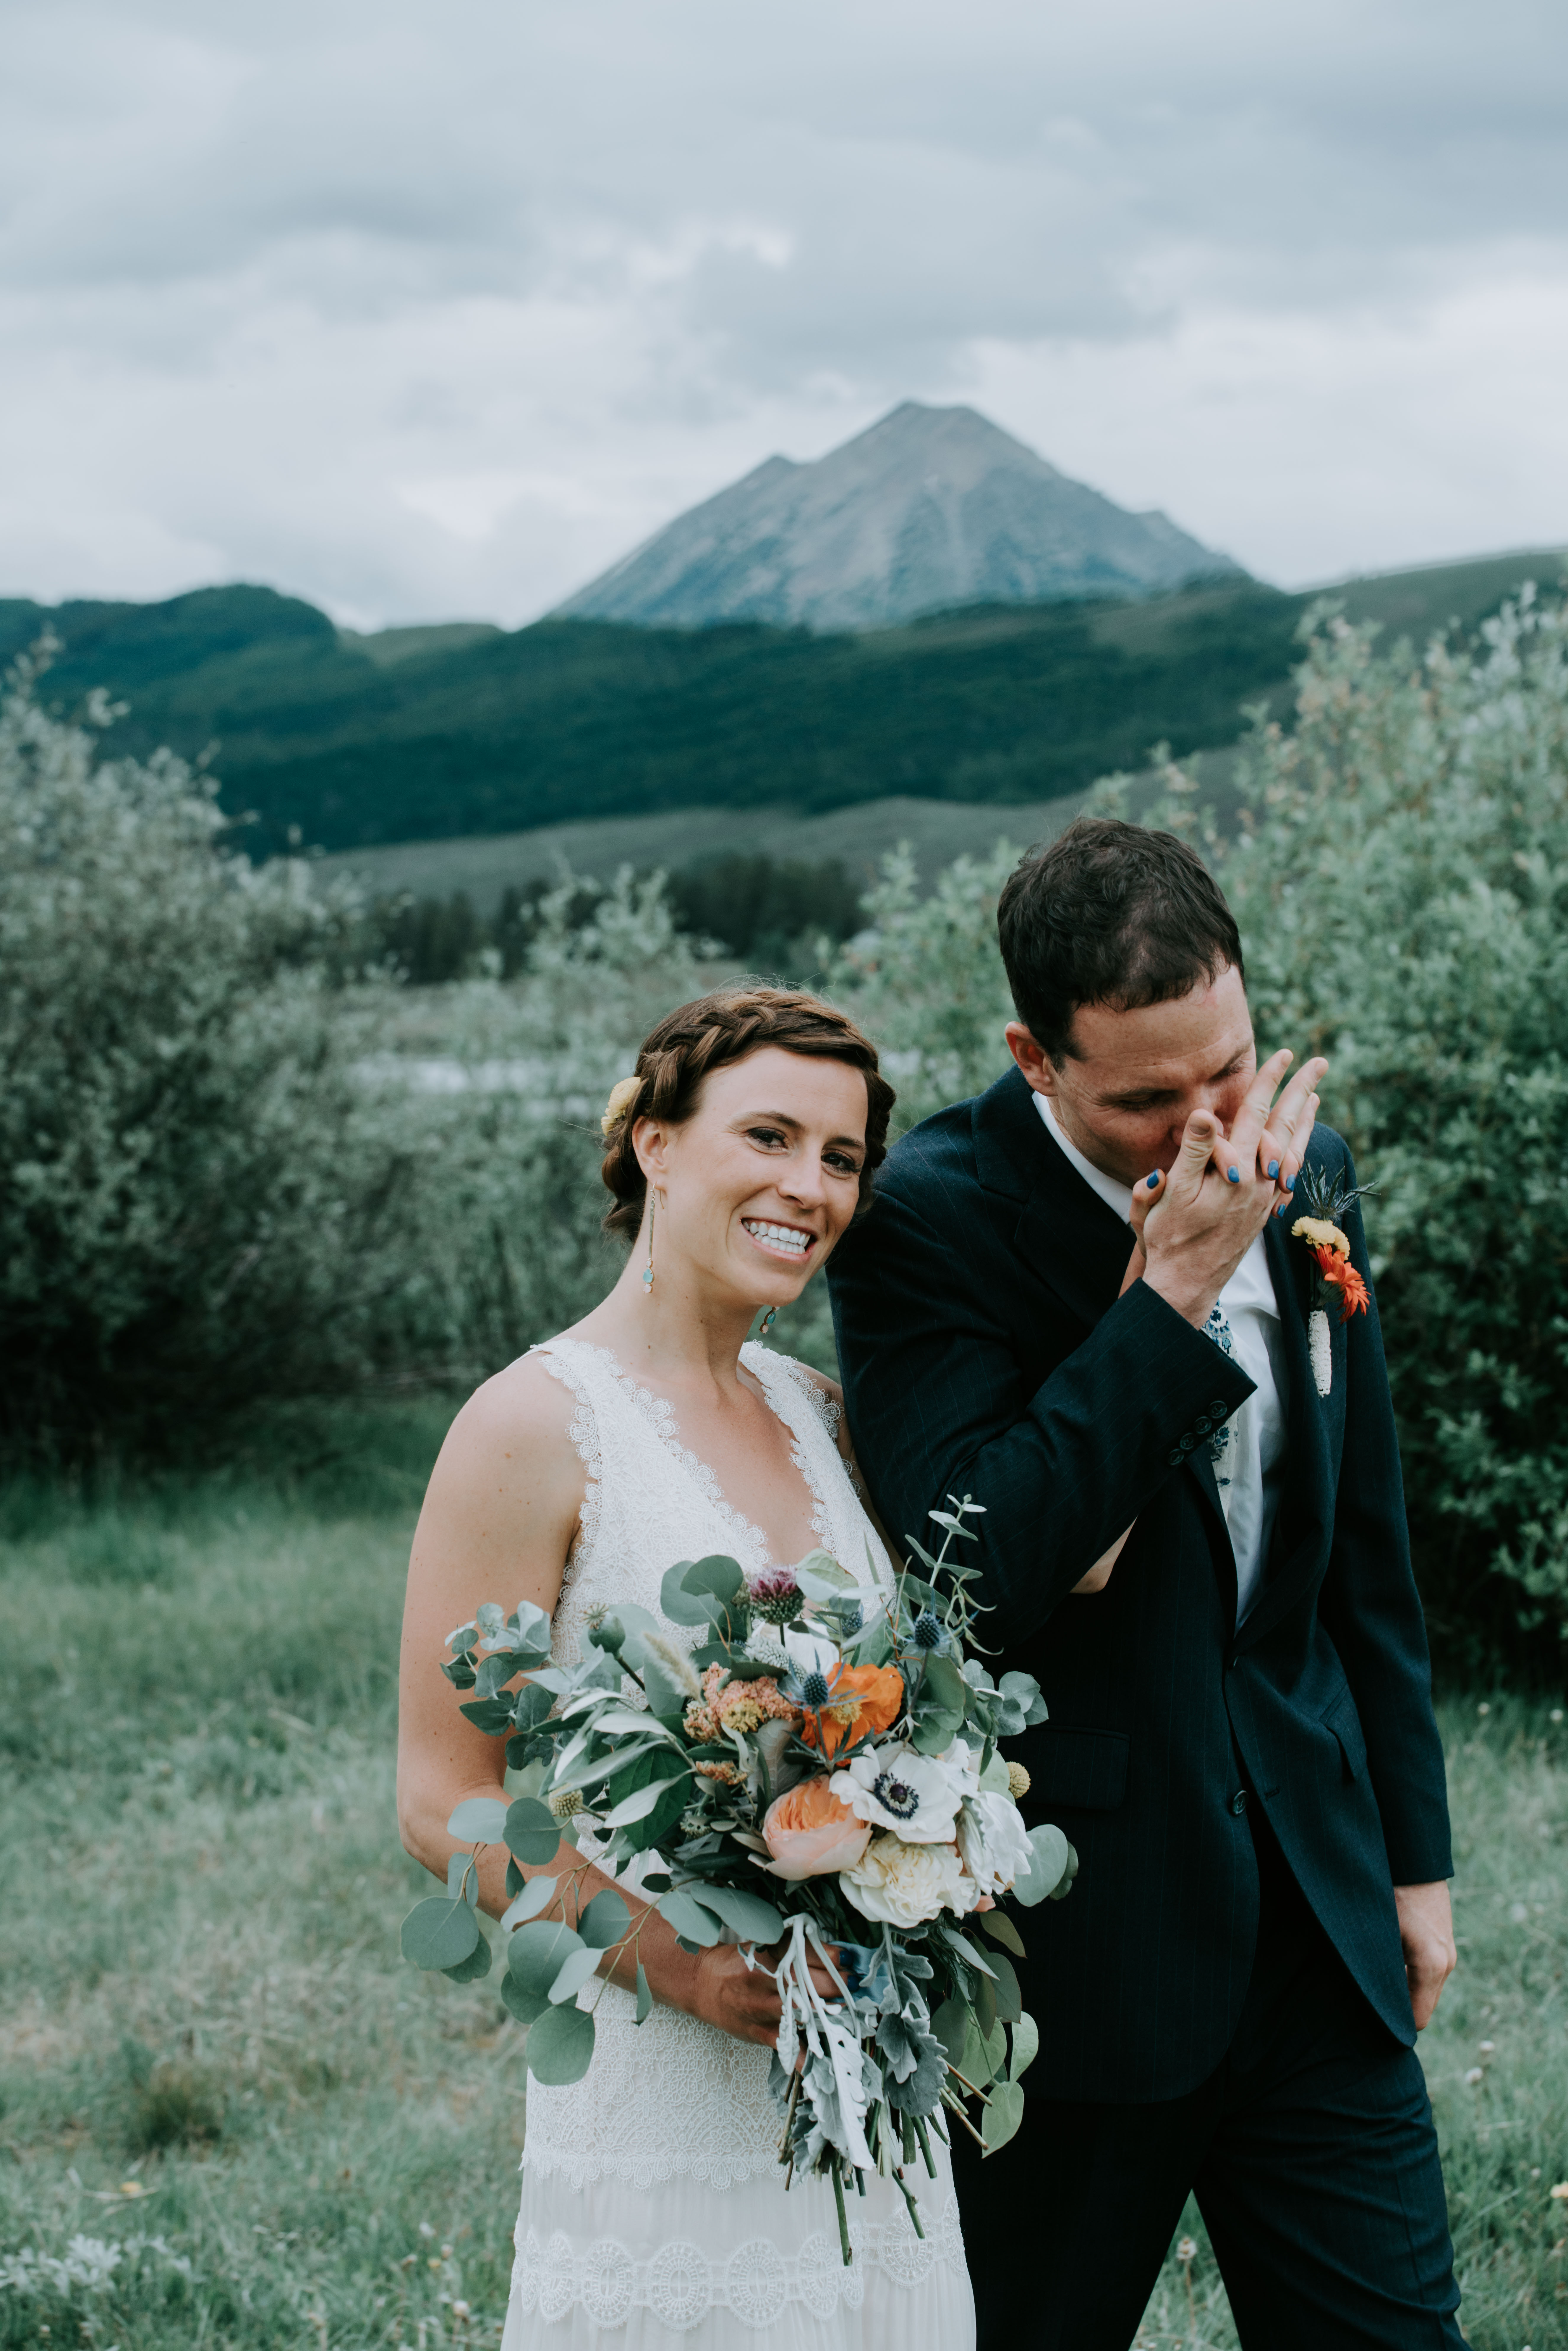 Laura_Alexe_Wedding_Crested_Butte_MegONeillPhotography__180616_123